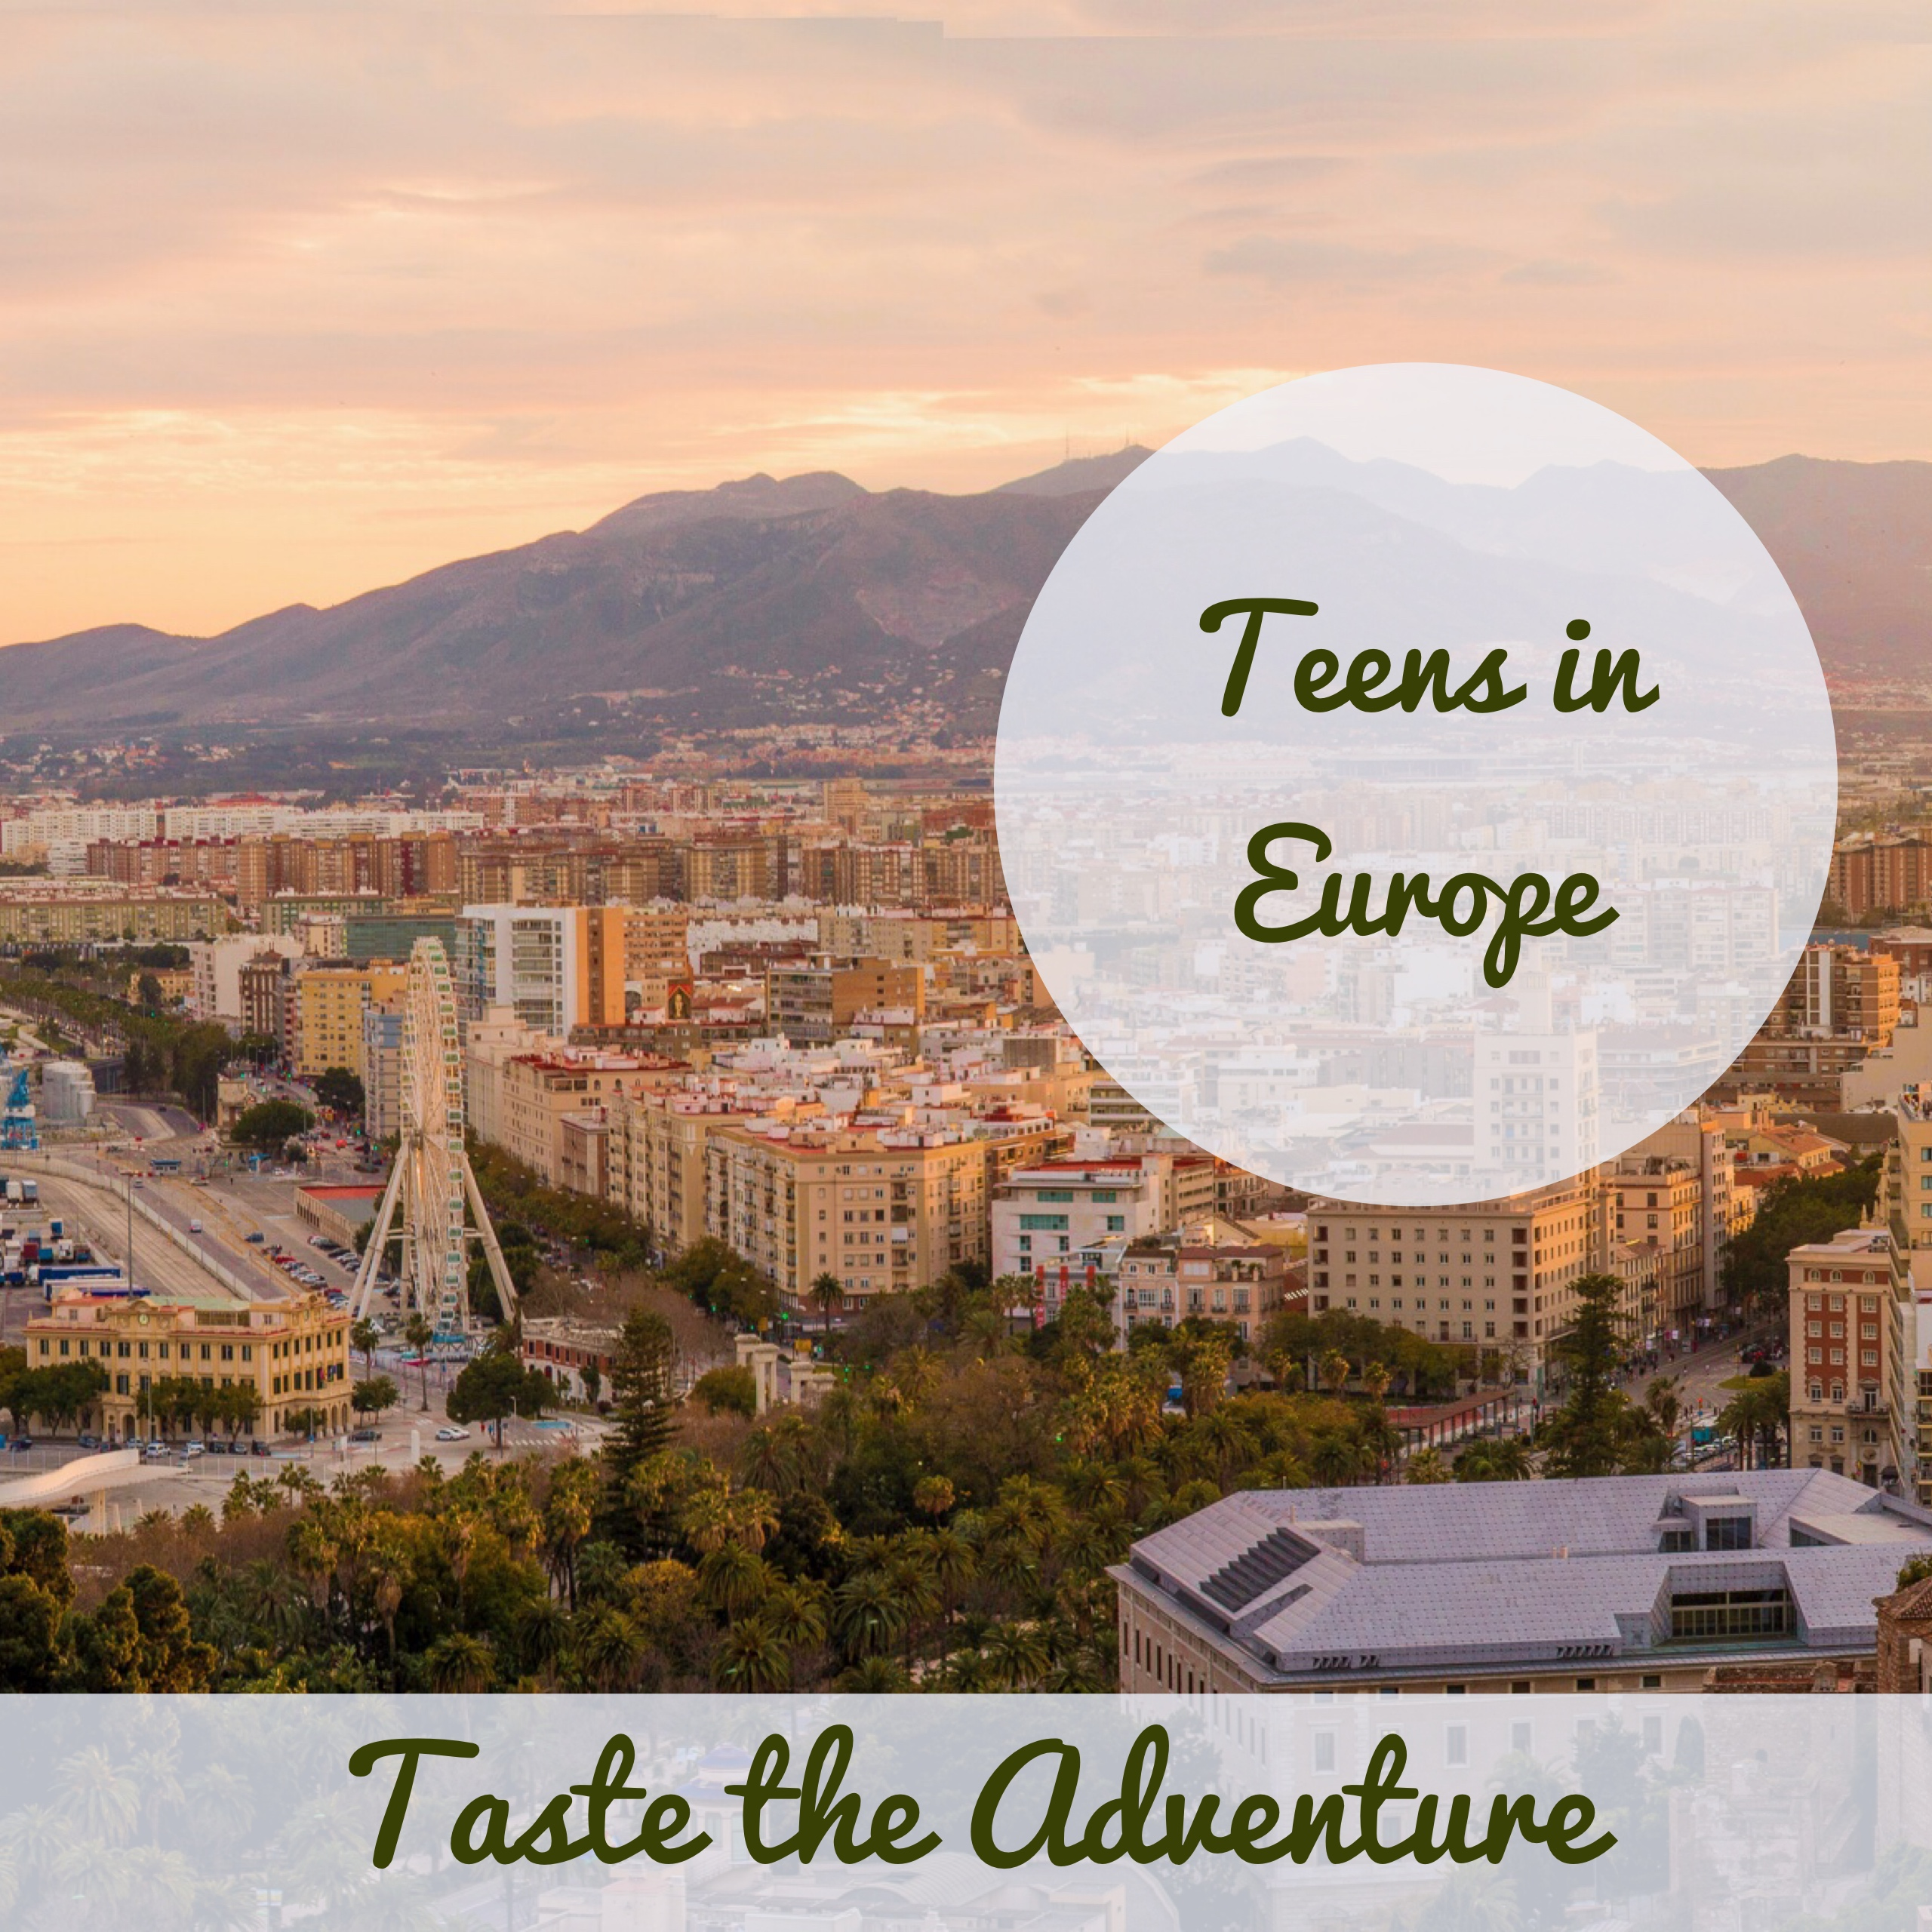 Learn about our European Adventures for Teens!